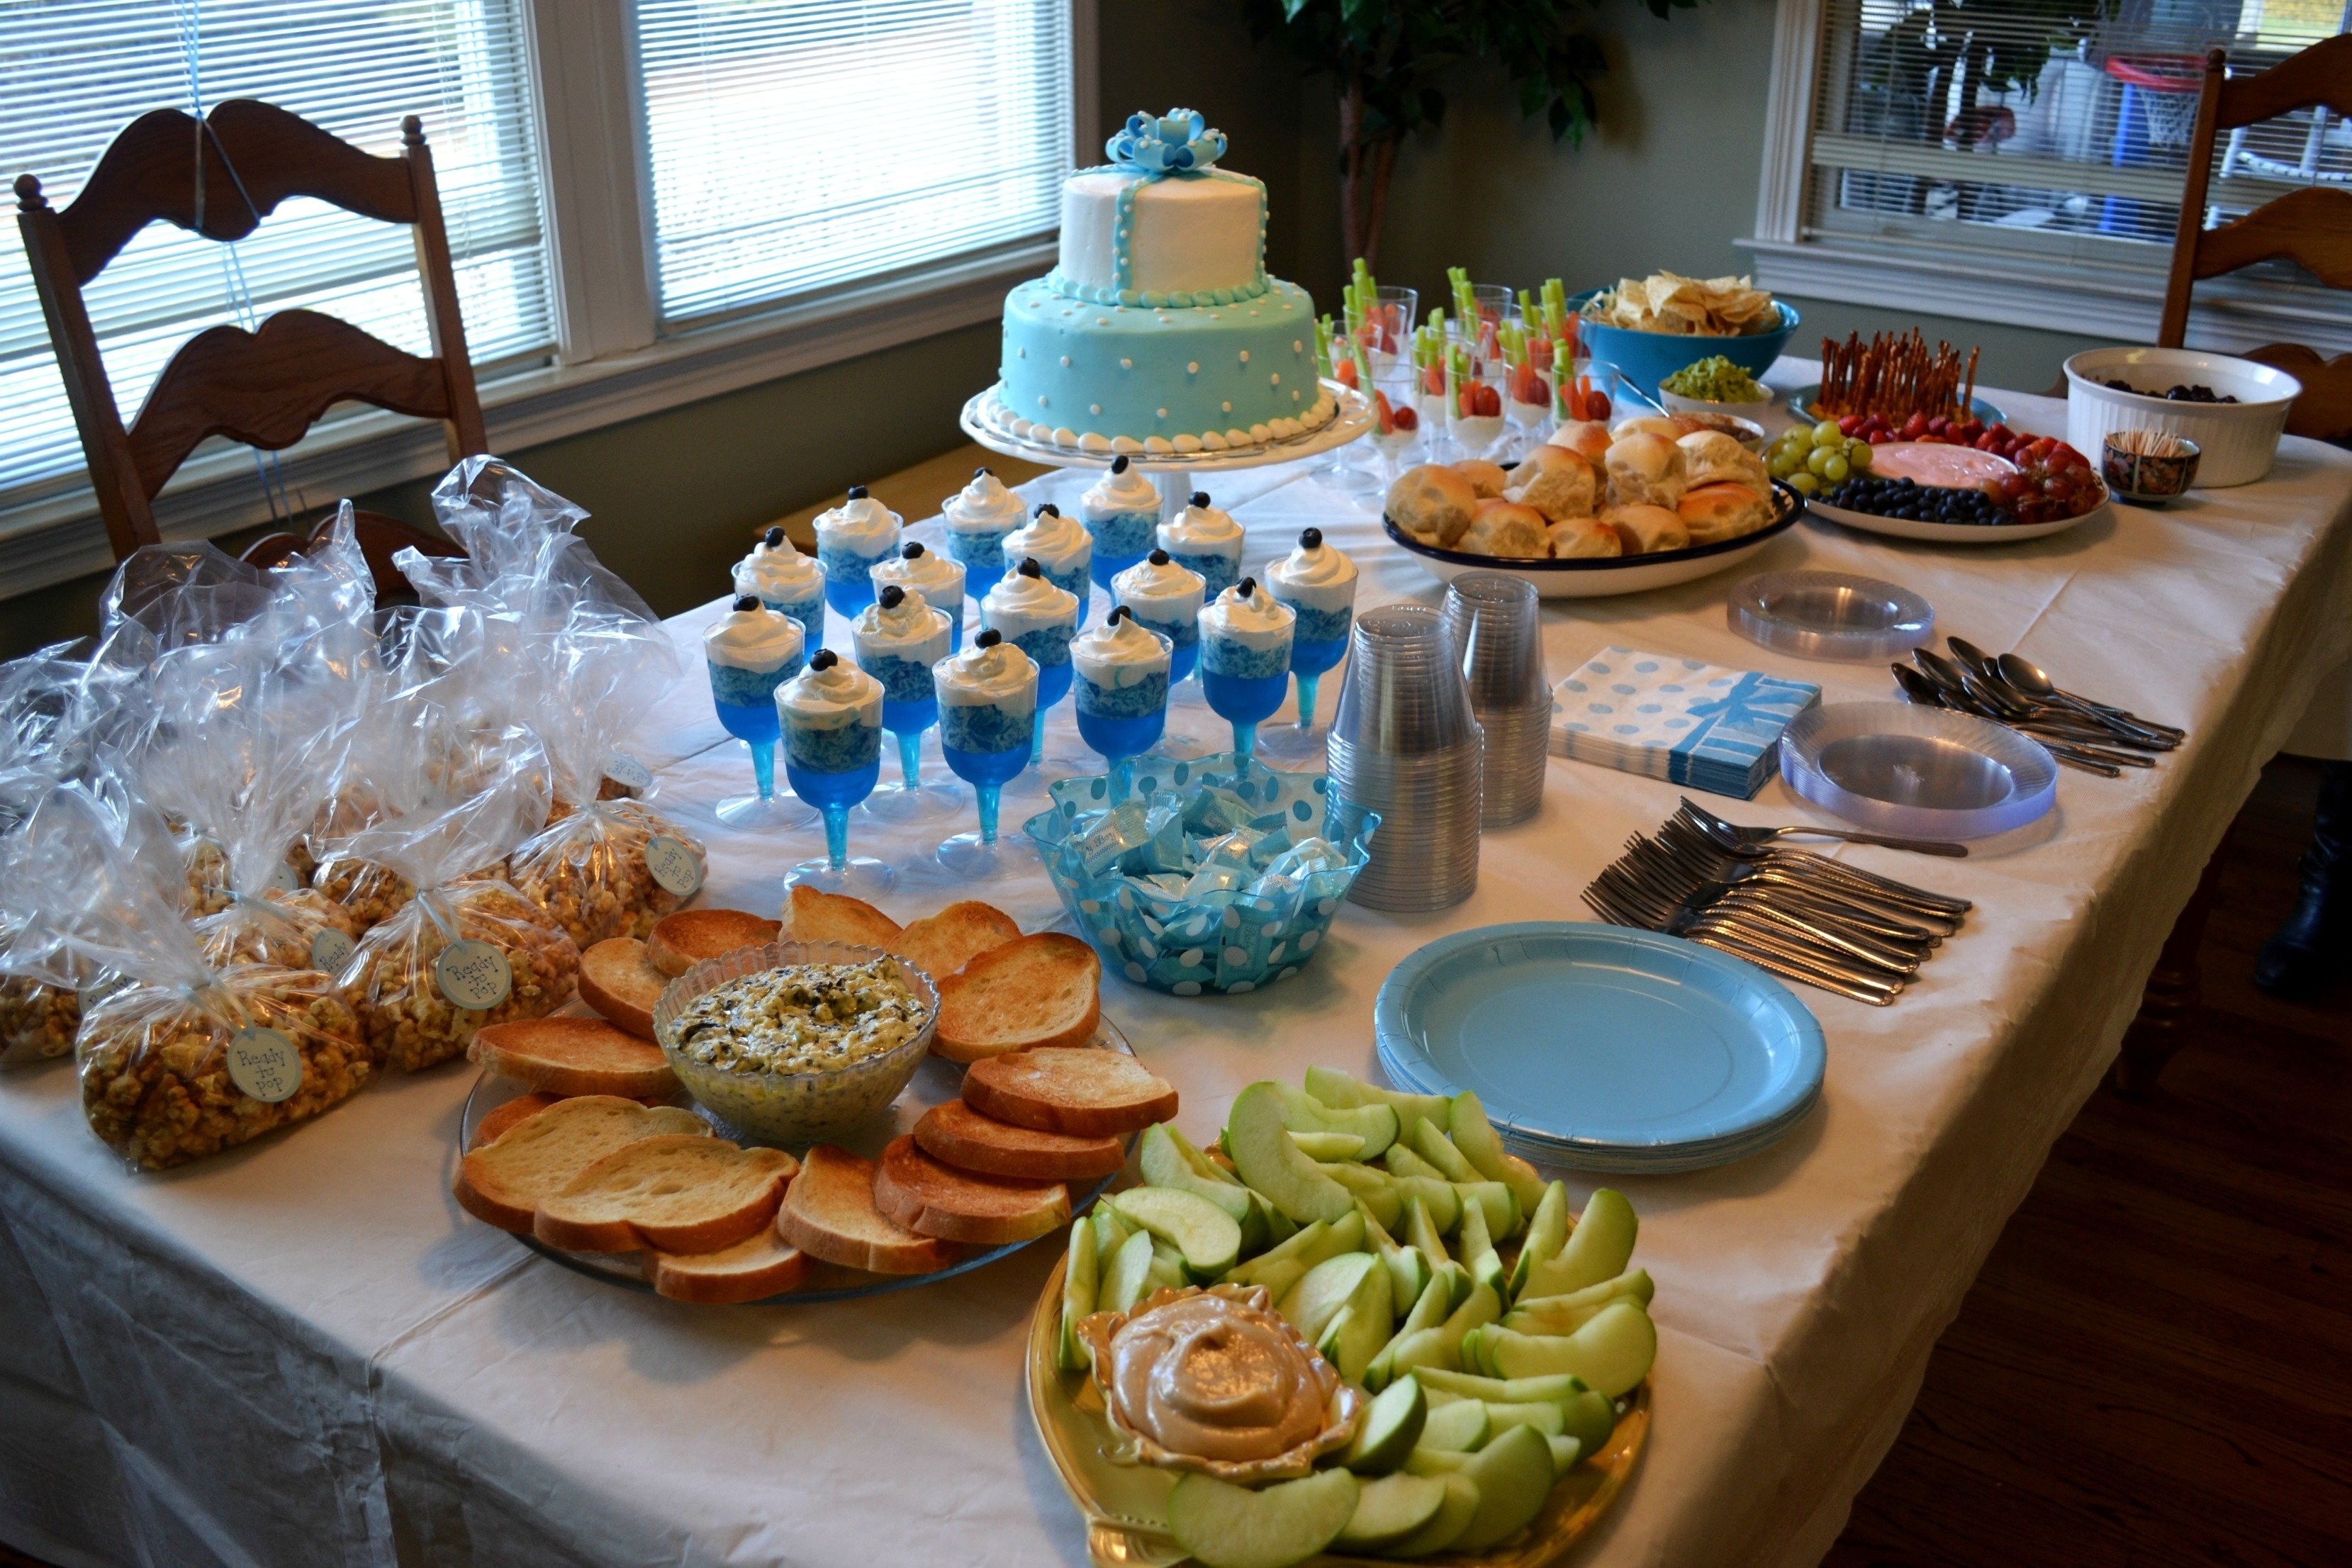 10 Nice Food Ideas For Baby Showers baby shower food ideas for boys baby shower ideas gallery 1 2020